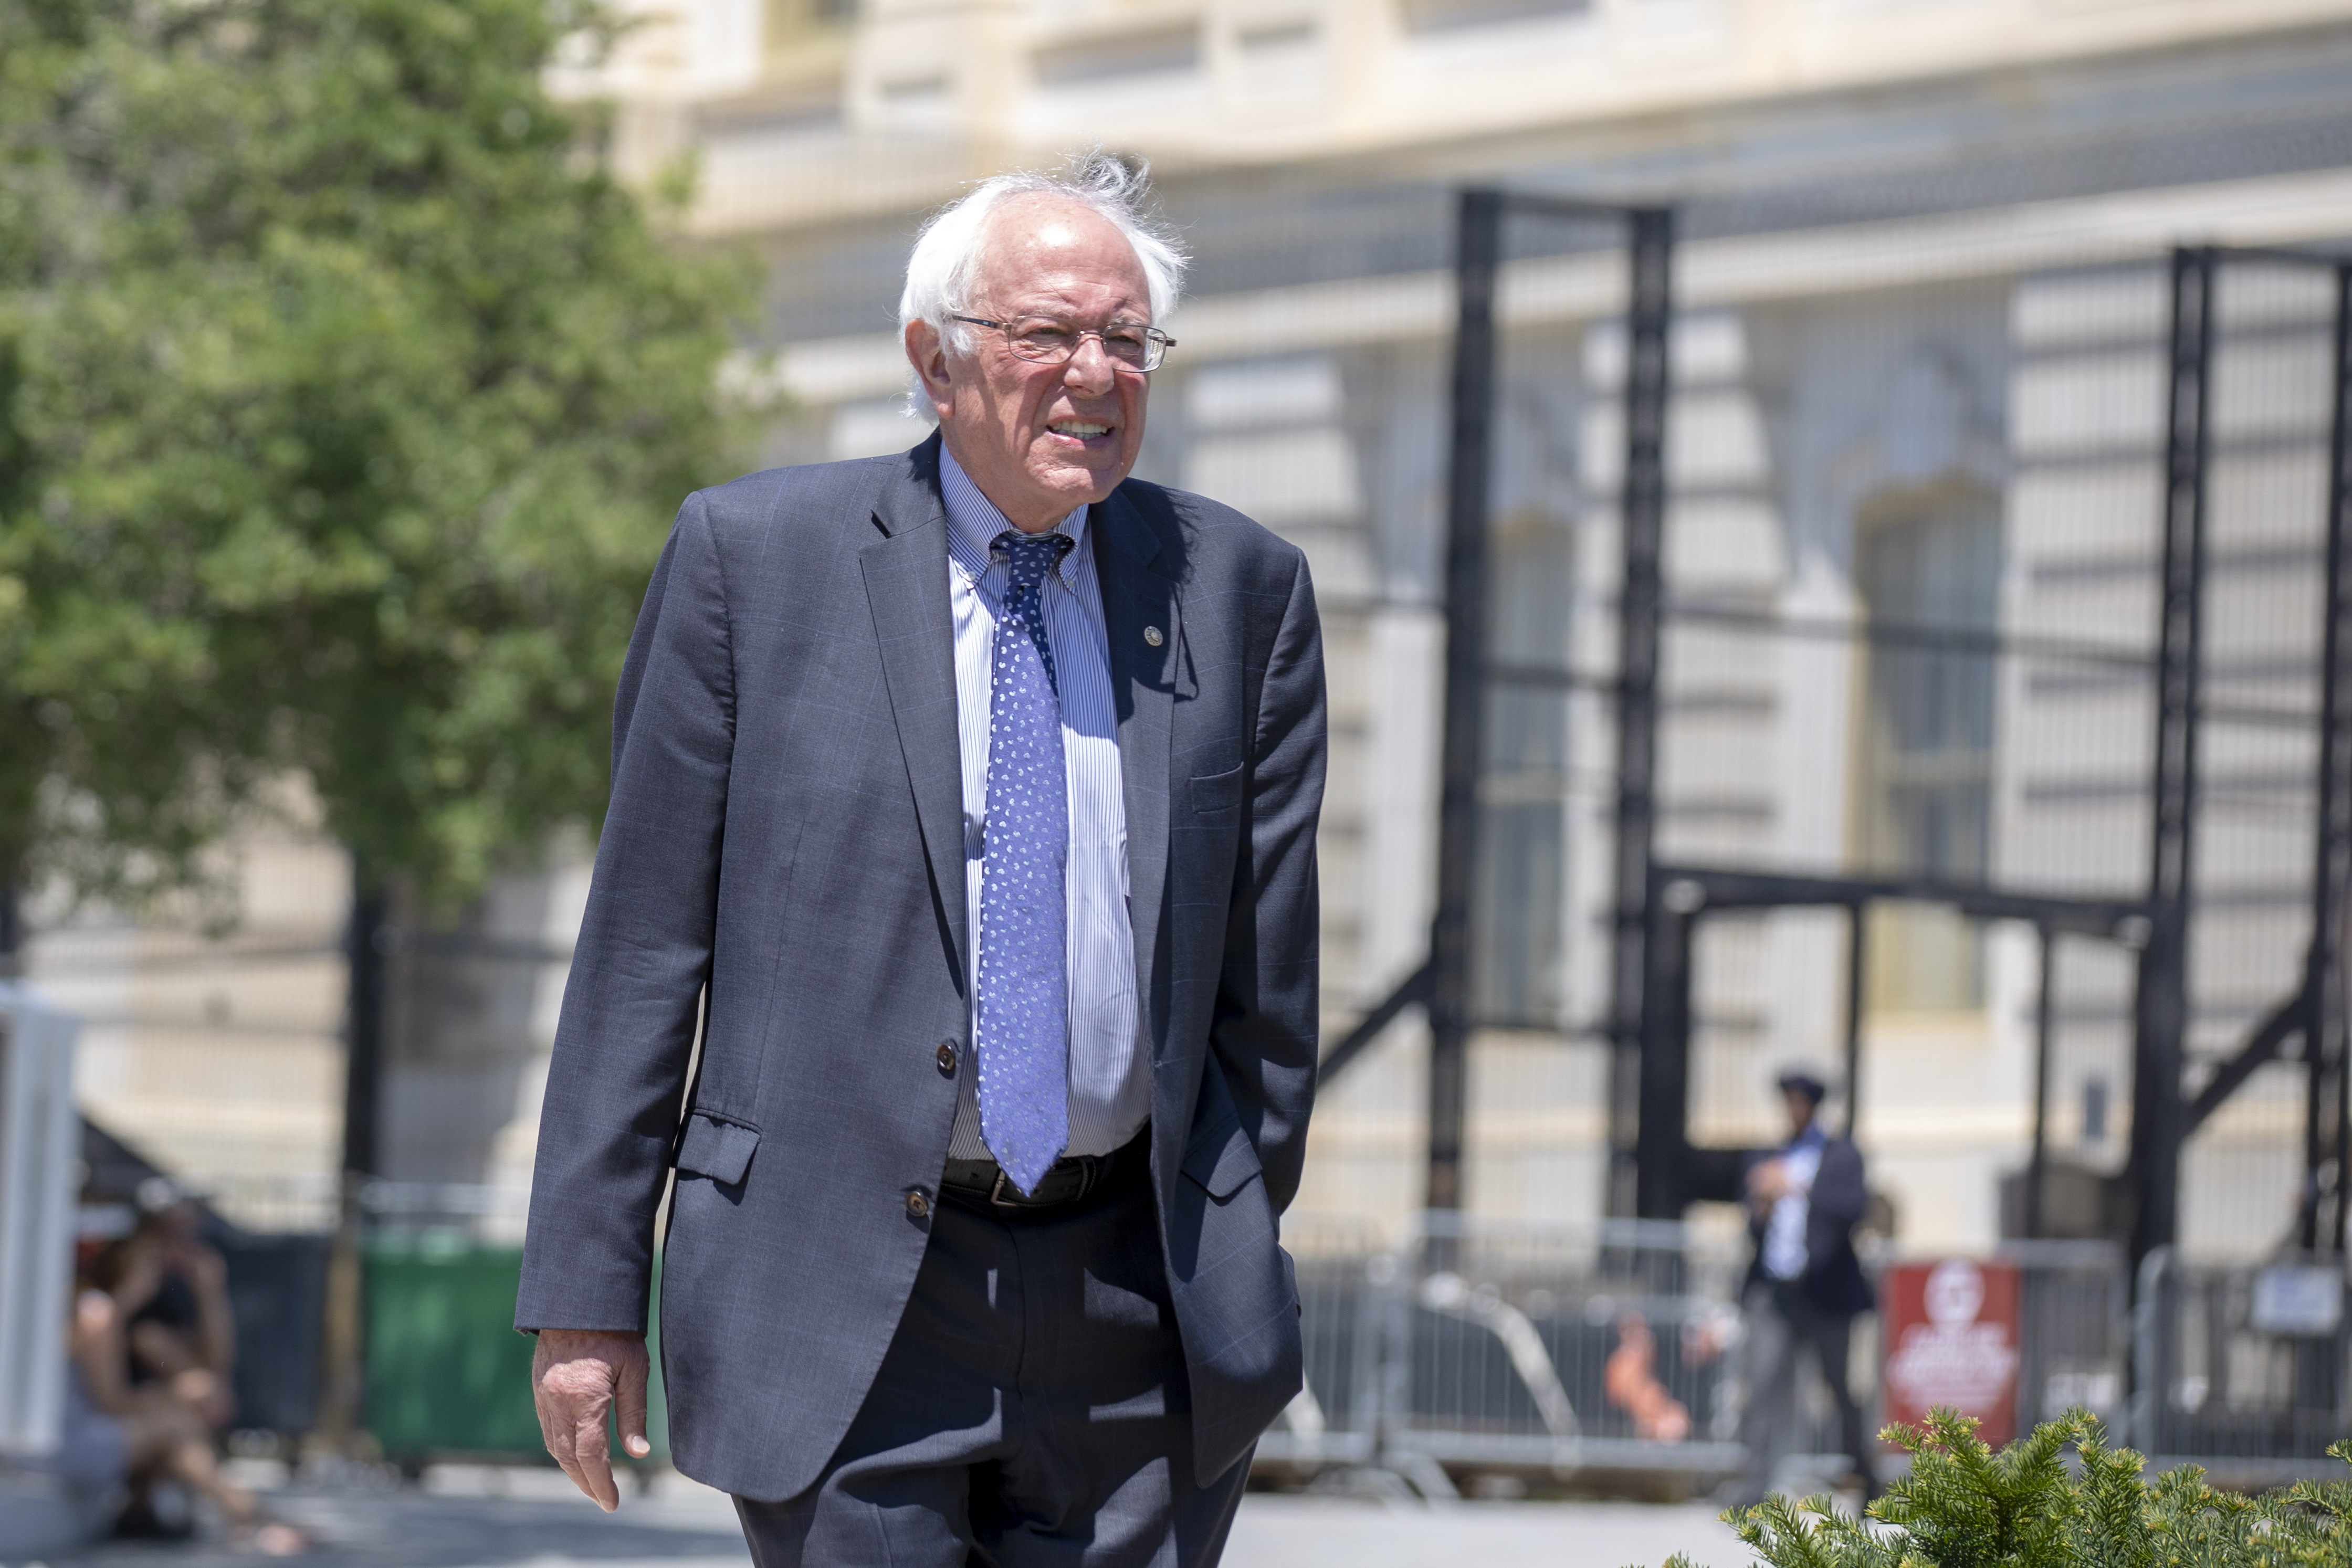 Sen. Bernie Sanders (I-VT) arrives at a news conference regarding the separation of immigrant children at the U.S. Capitol on July 10, 2018 in Washington, DC. (Alex Edelman/Getty Images)